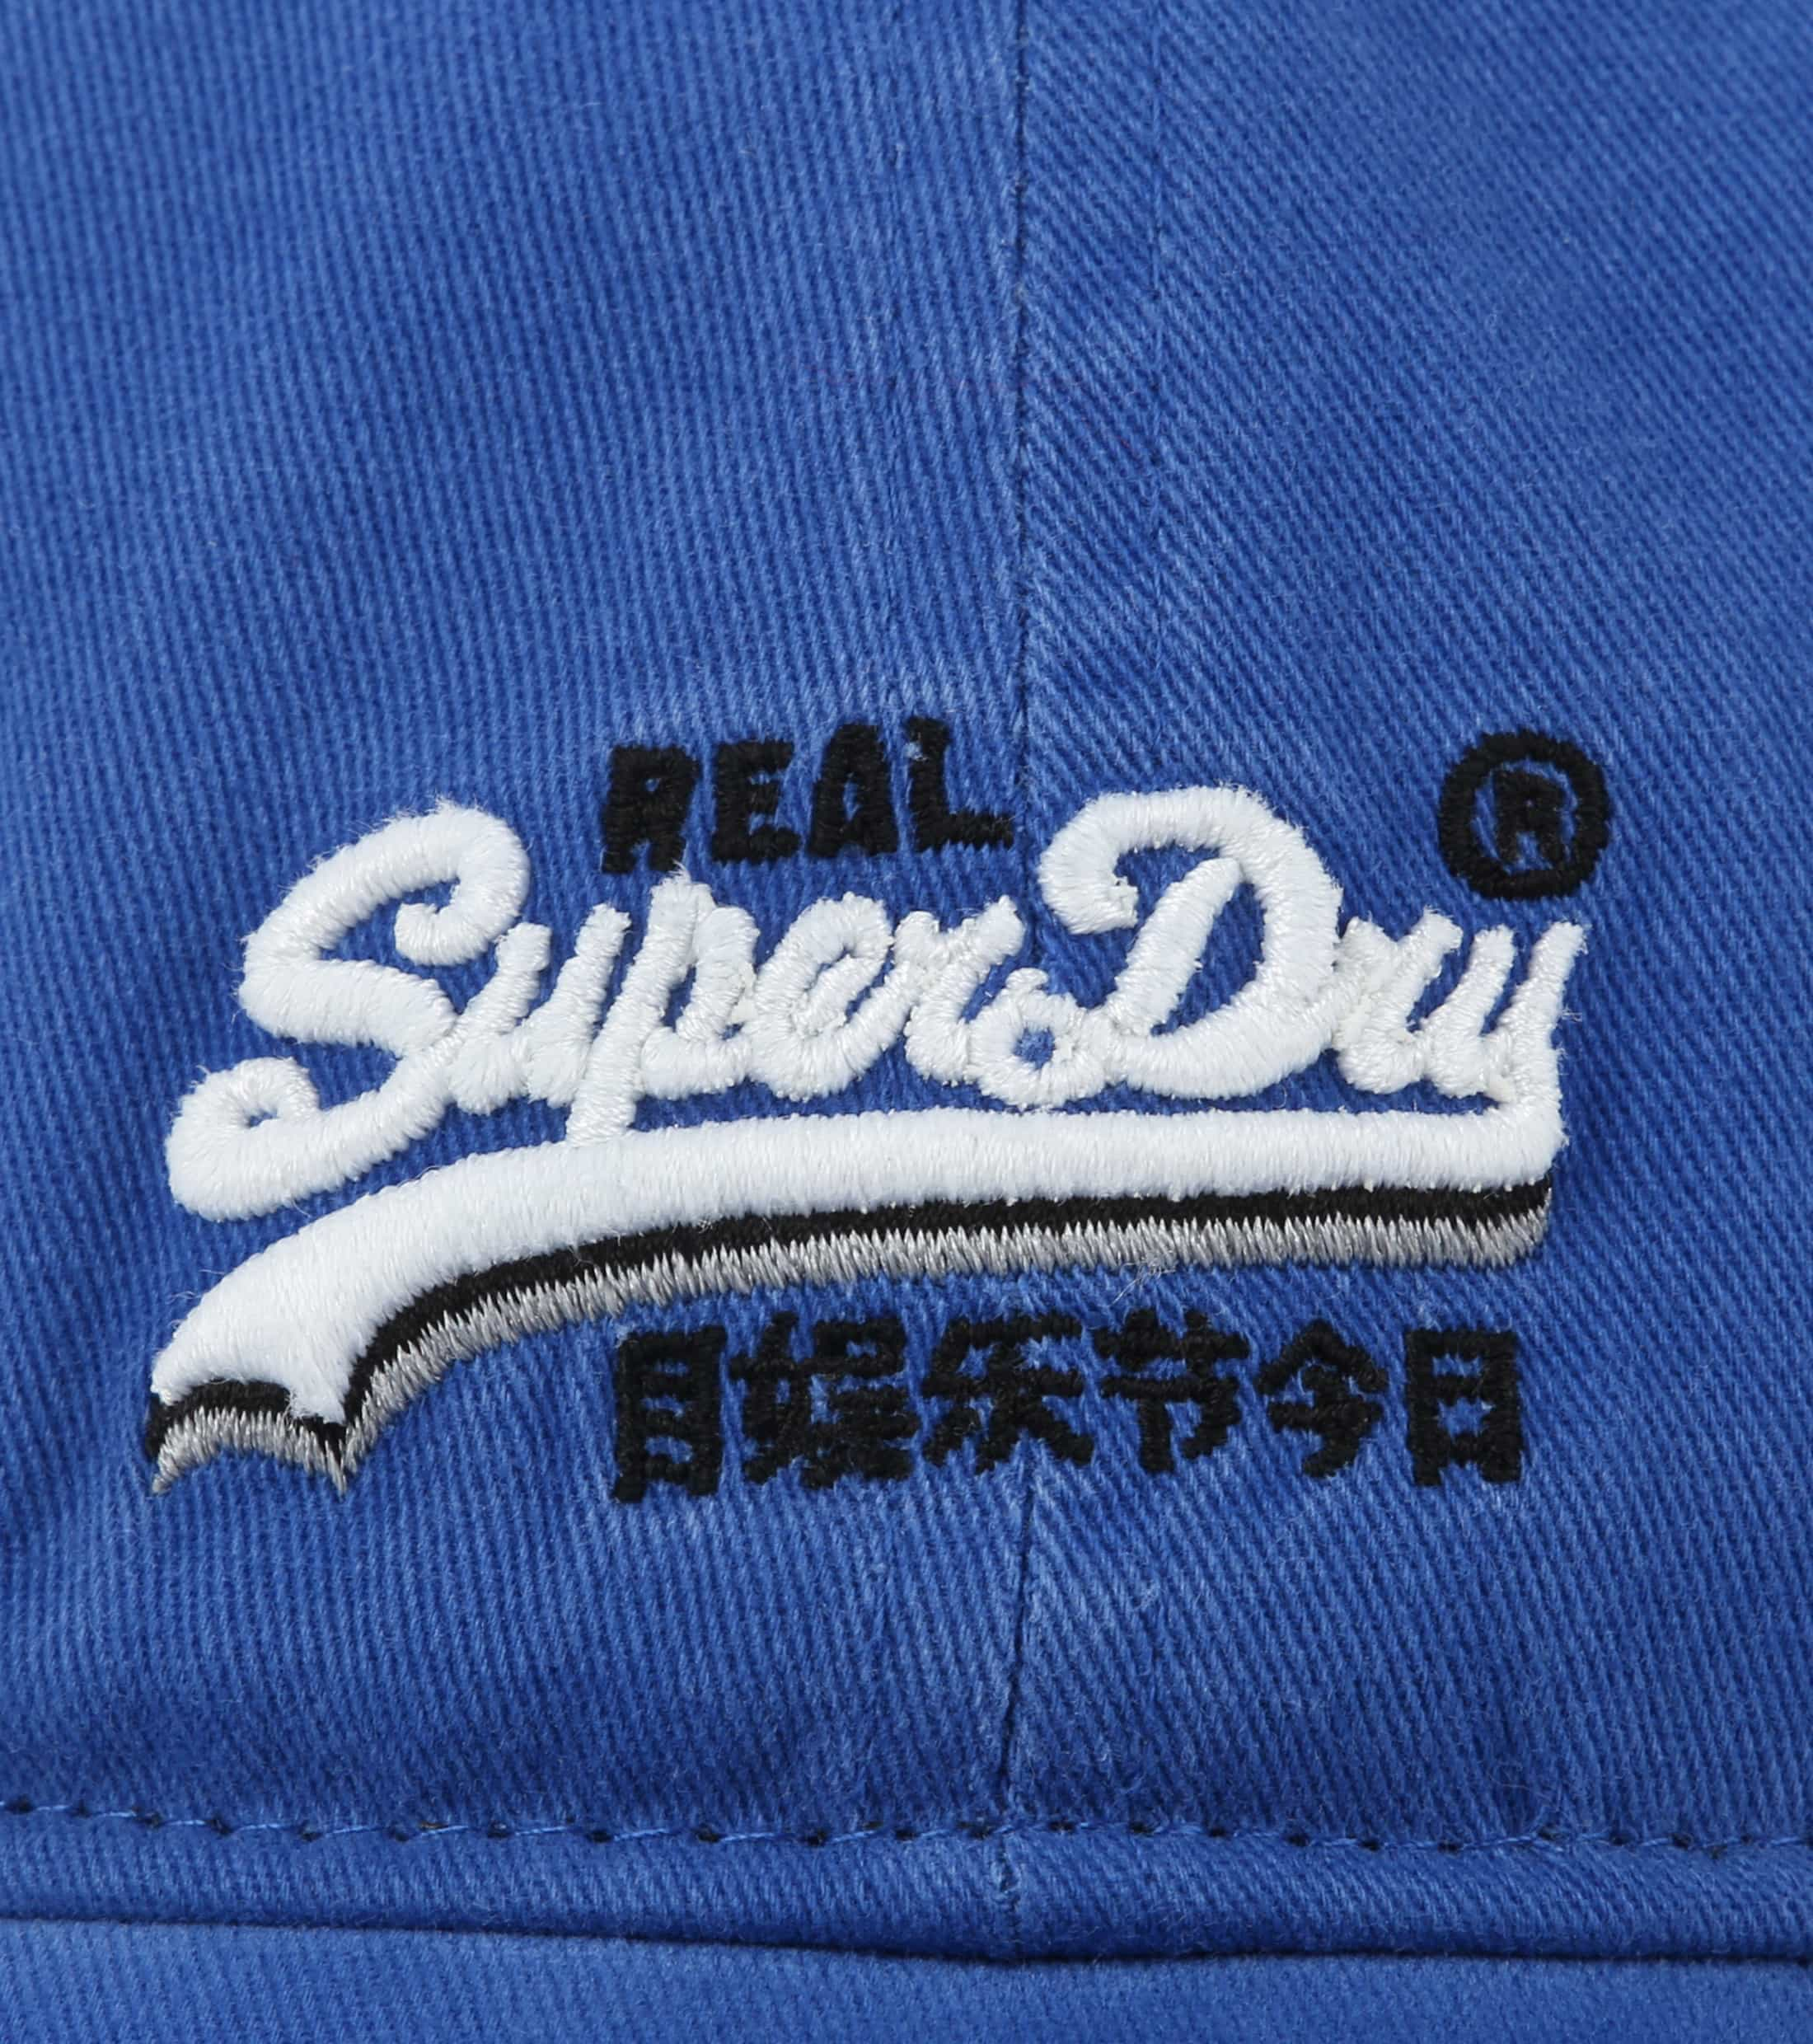 Superdry Orange Label Twill Kappe Blau foto 1